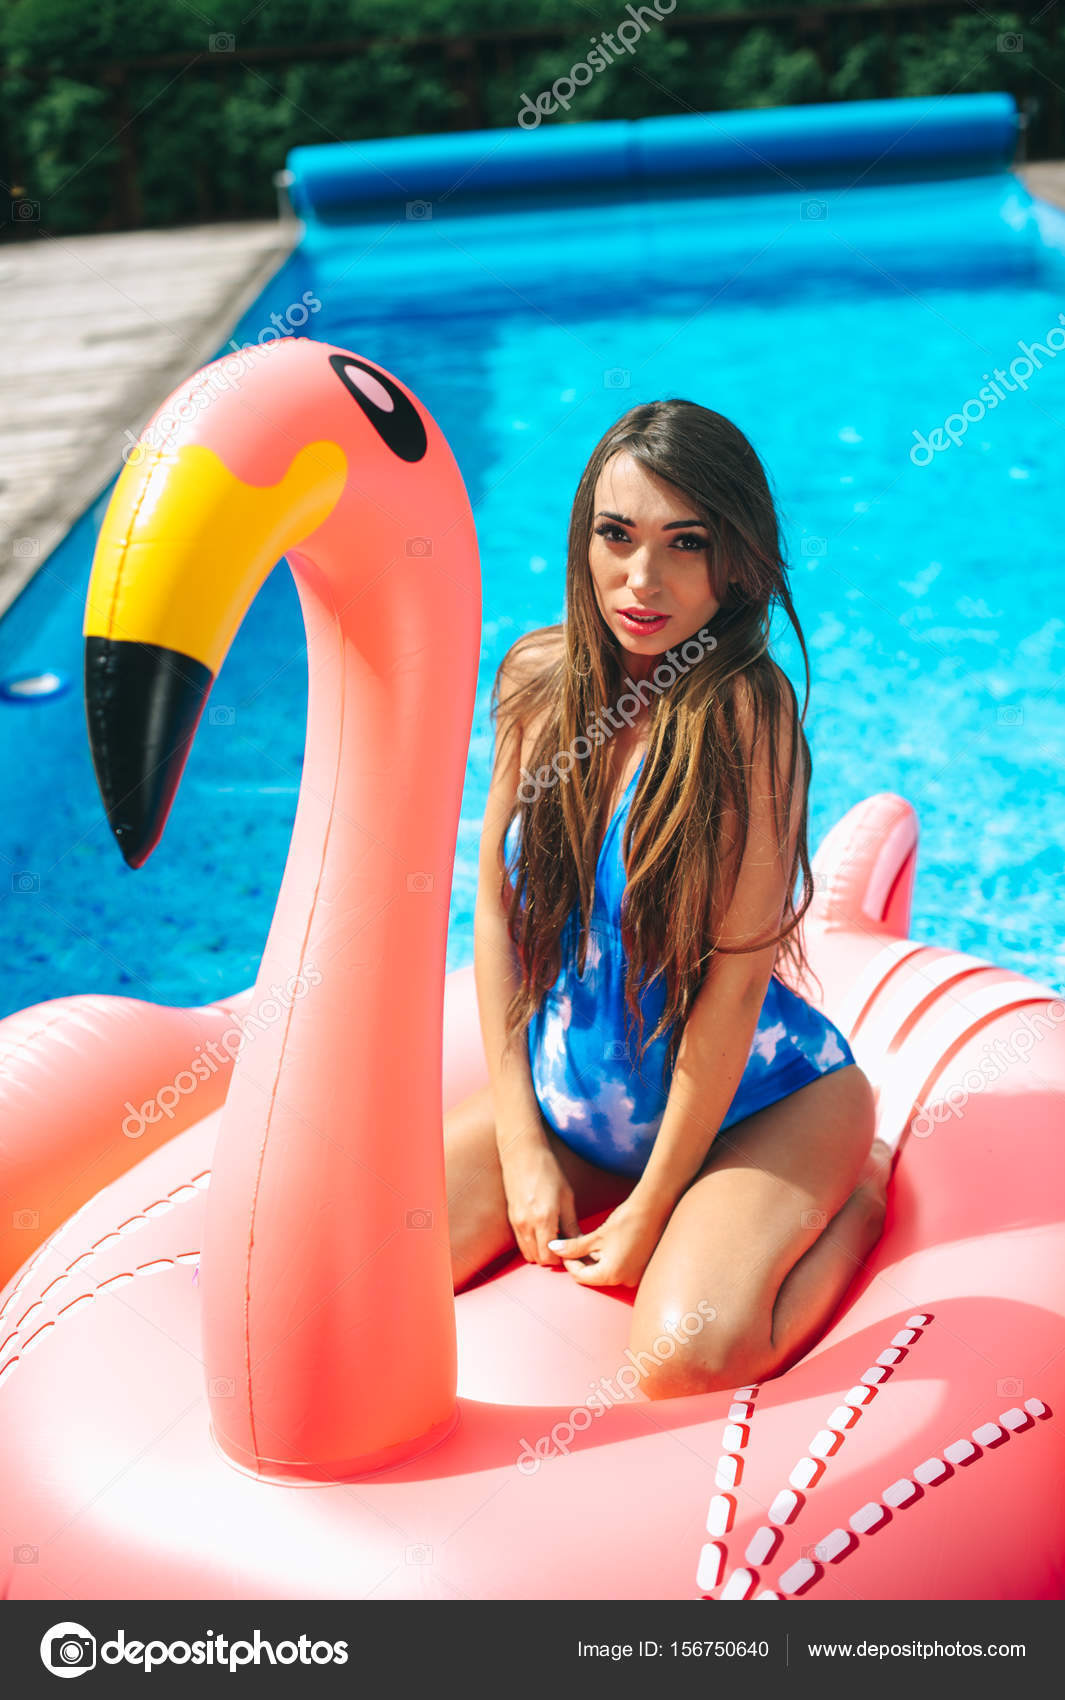 b113541b83ef2 Beautiful pregnant woman, wearing swimsuit, lying on a pink flamingo air mattress  in a pool of blue water — Photo by ...